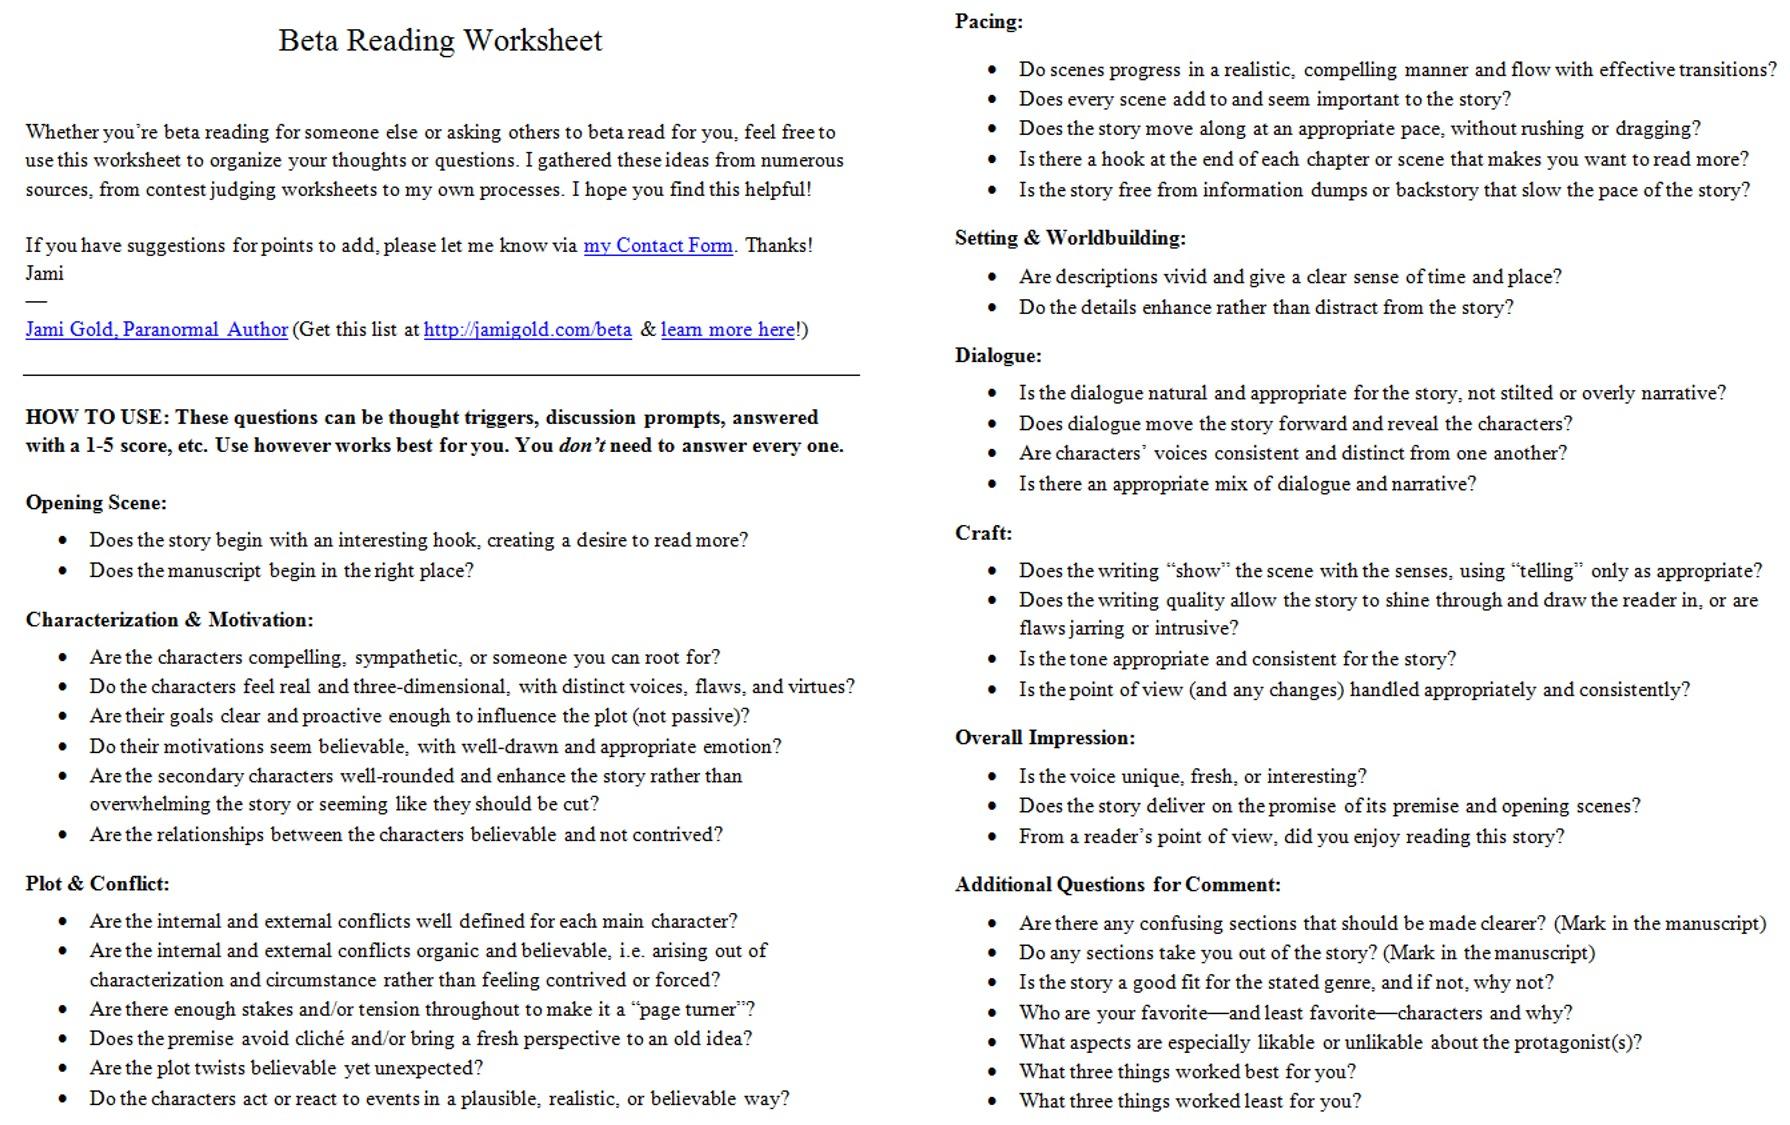 Aldiablosus  Marvelous Worksheets For Writers  Jami Gold Paranormal Author With Gorgeous Screen Shot Of The Twopage Beta Reading Worksheet With Amusing Rti Worksheets Also Free Algebra Worksheets With Answer Key In Addition Historical Fiction Worksheets And Coordinate Pictures Worksheet As Well As Adding And Subtracting Fractions Worksheets With Answers Additionally Area And Perimeter Of Compound Shapes Worksheet From Jamigoldcom With Aldiablosus  Gorgeous Worksheets For Writers  Jami Gold Paranormal Author With Amusing Screen Shot Of The Twopage Beta Reading Worksheet And Marvelous Rti Worksheets Also Free Algebra Worksheets With Answer Key In Addition Historical Fiction Worksheets From Jamigoldcom